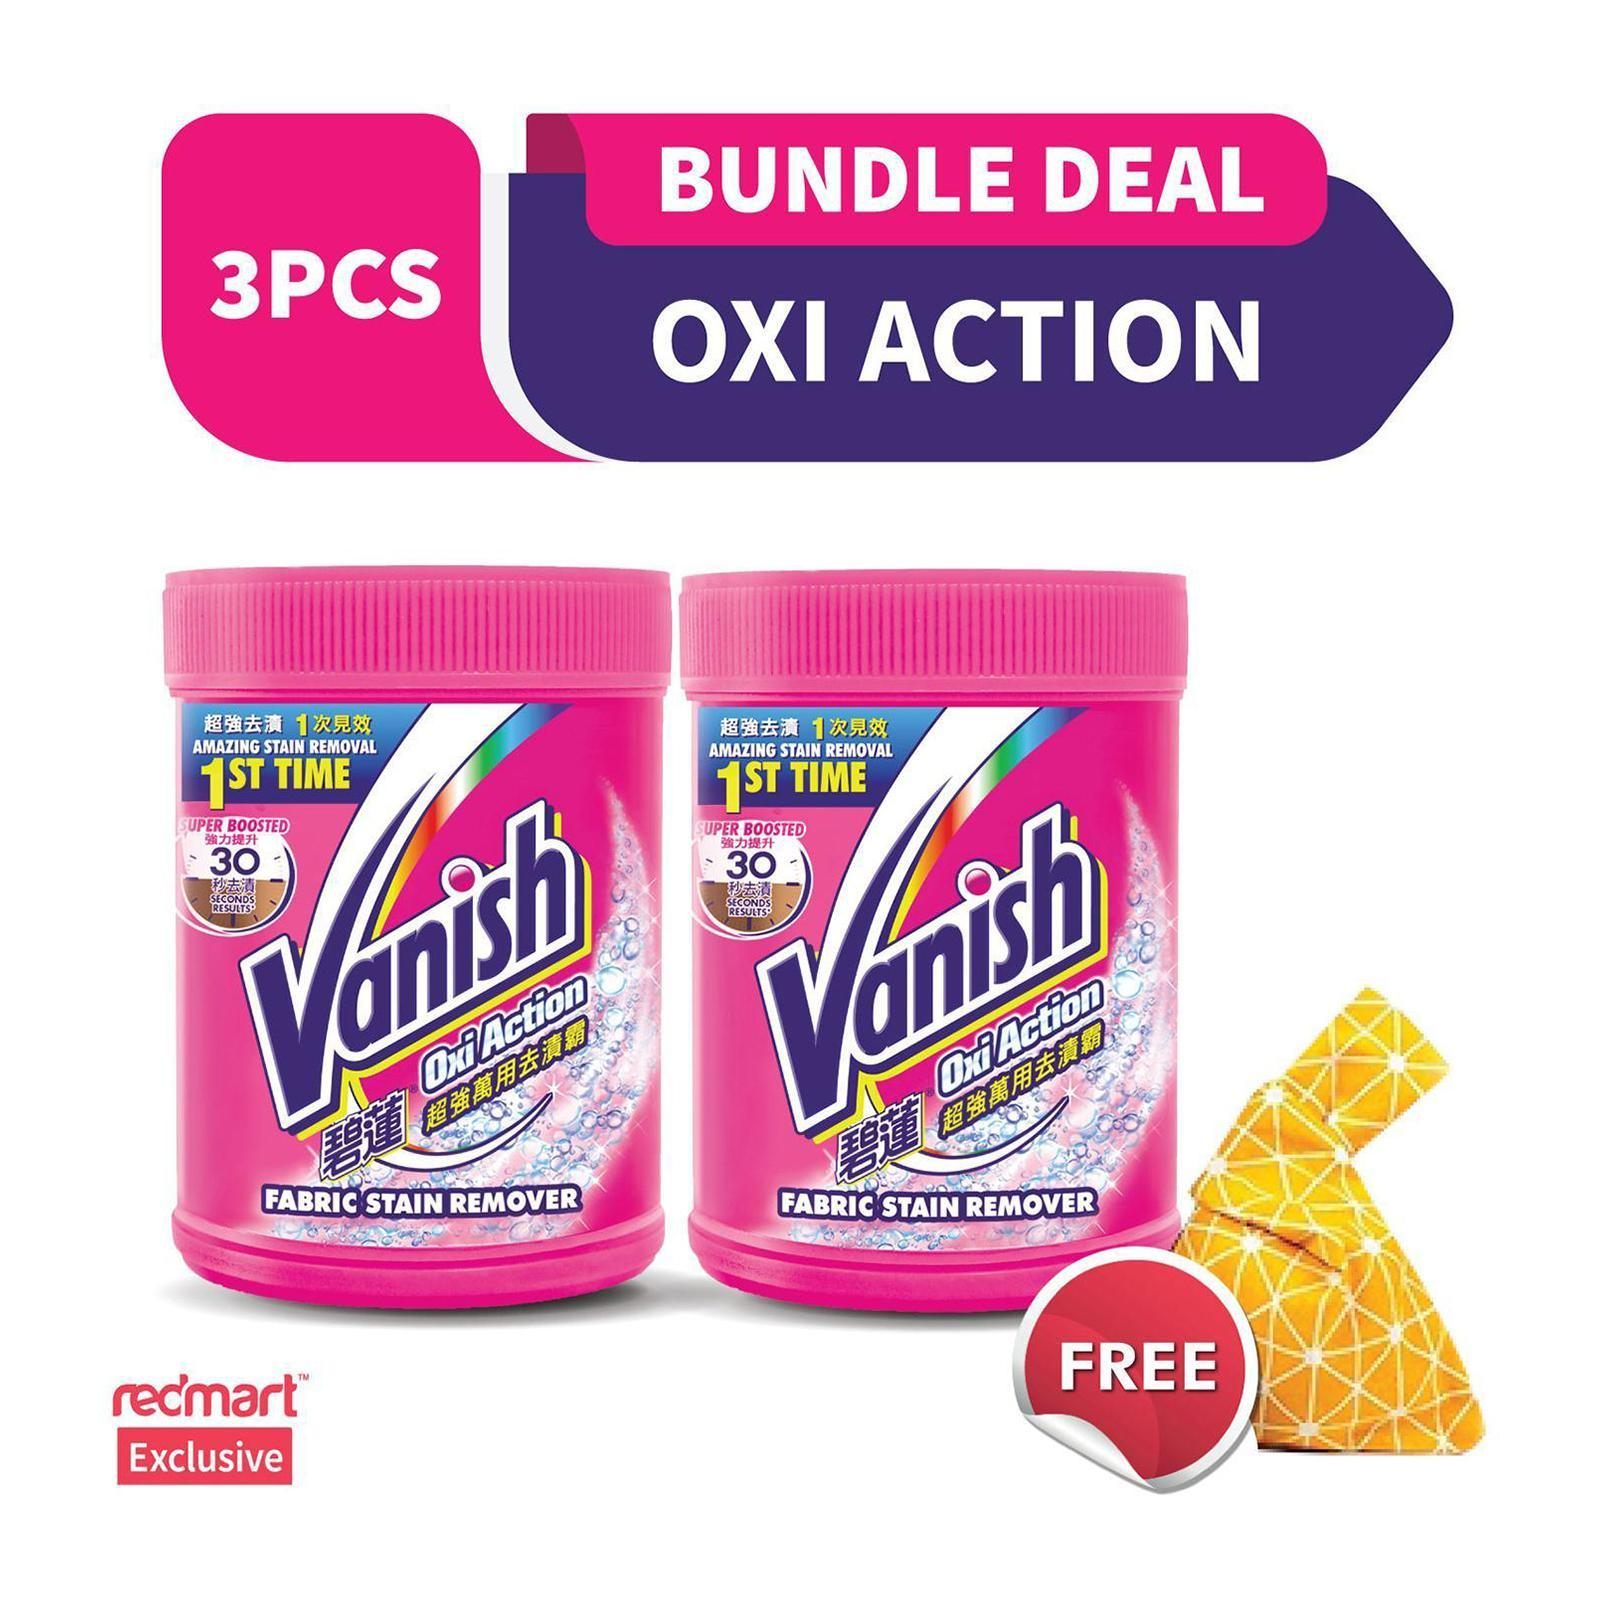 Vanish Power Oxi-Action Laundry Fabric Stain Remover 1.8 KG - Free 120G Bundle Pack